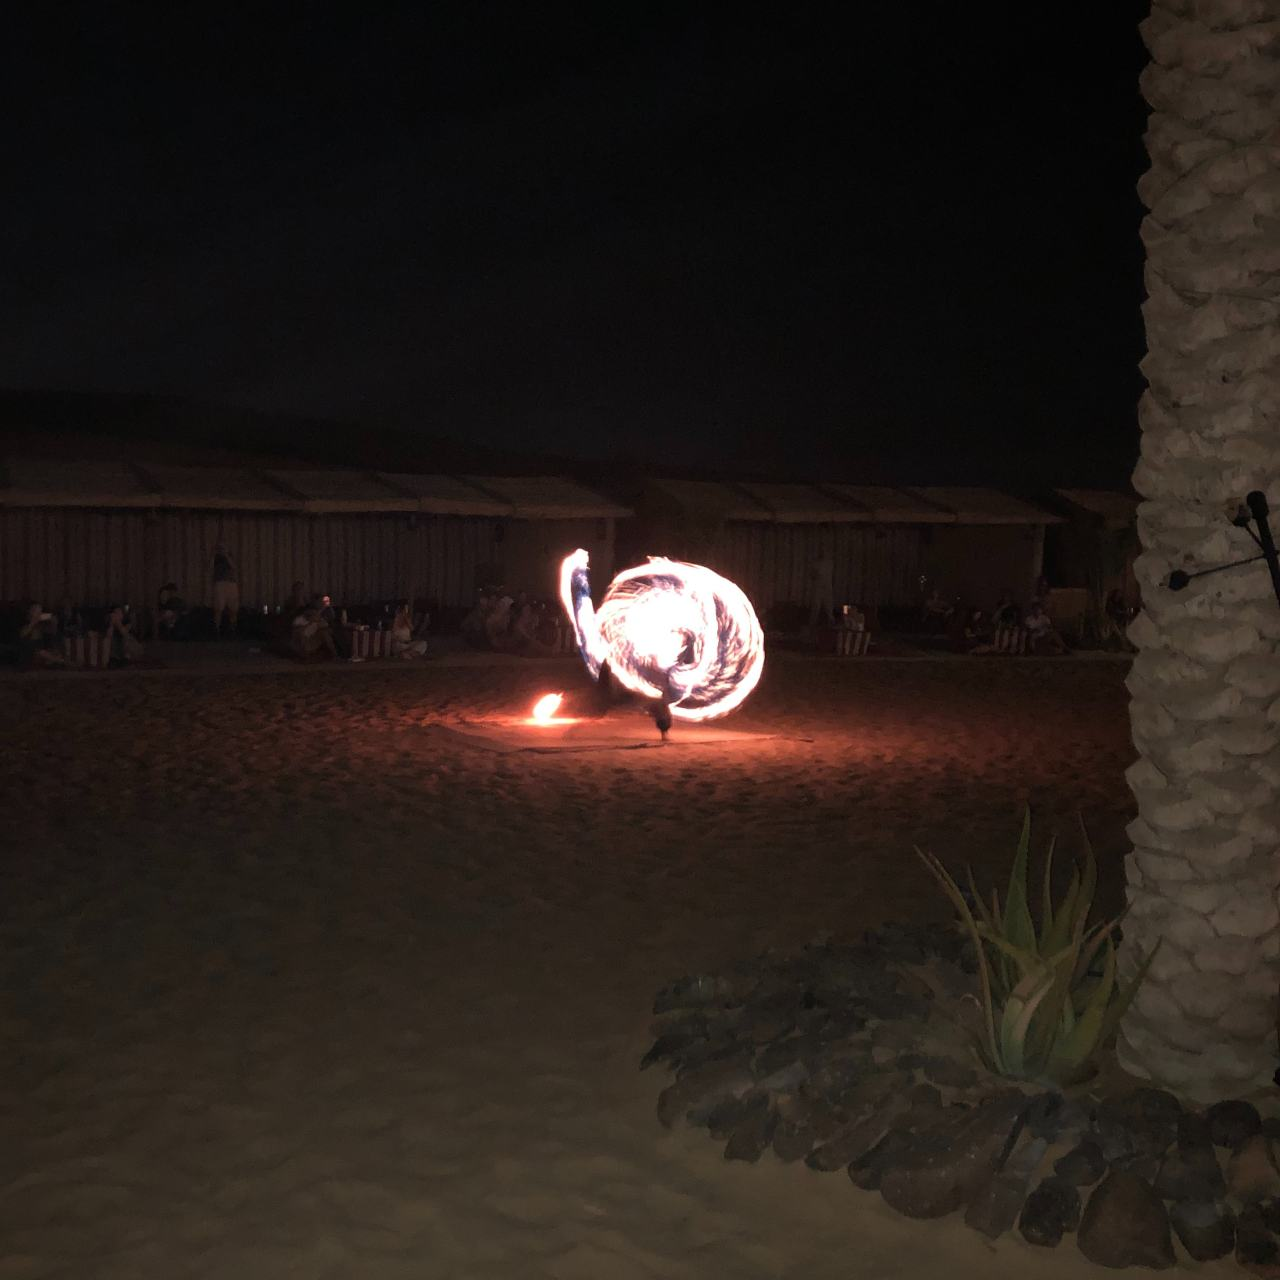 Fire dancer Dubai desert